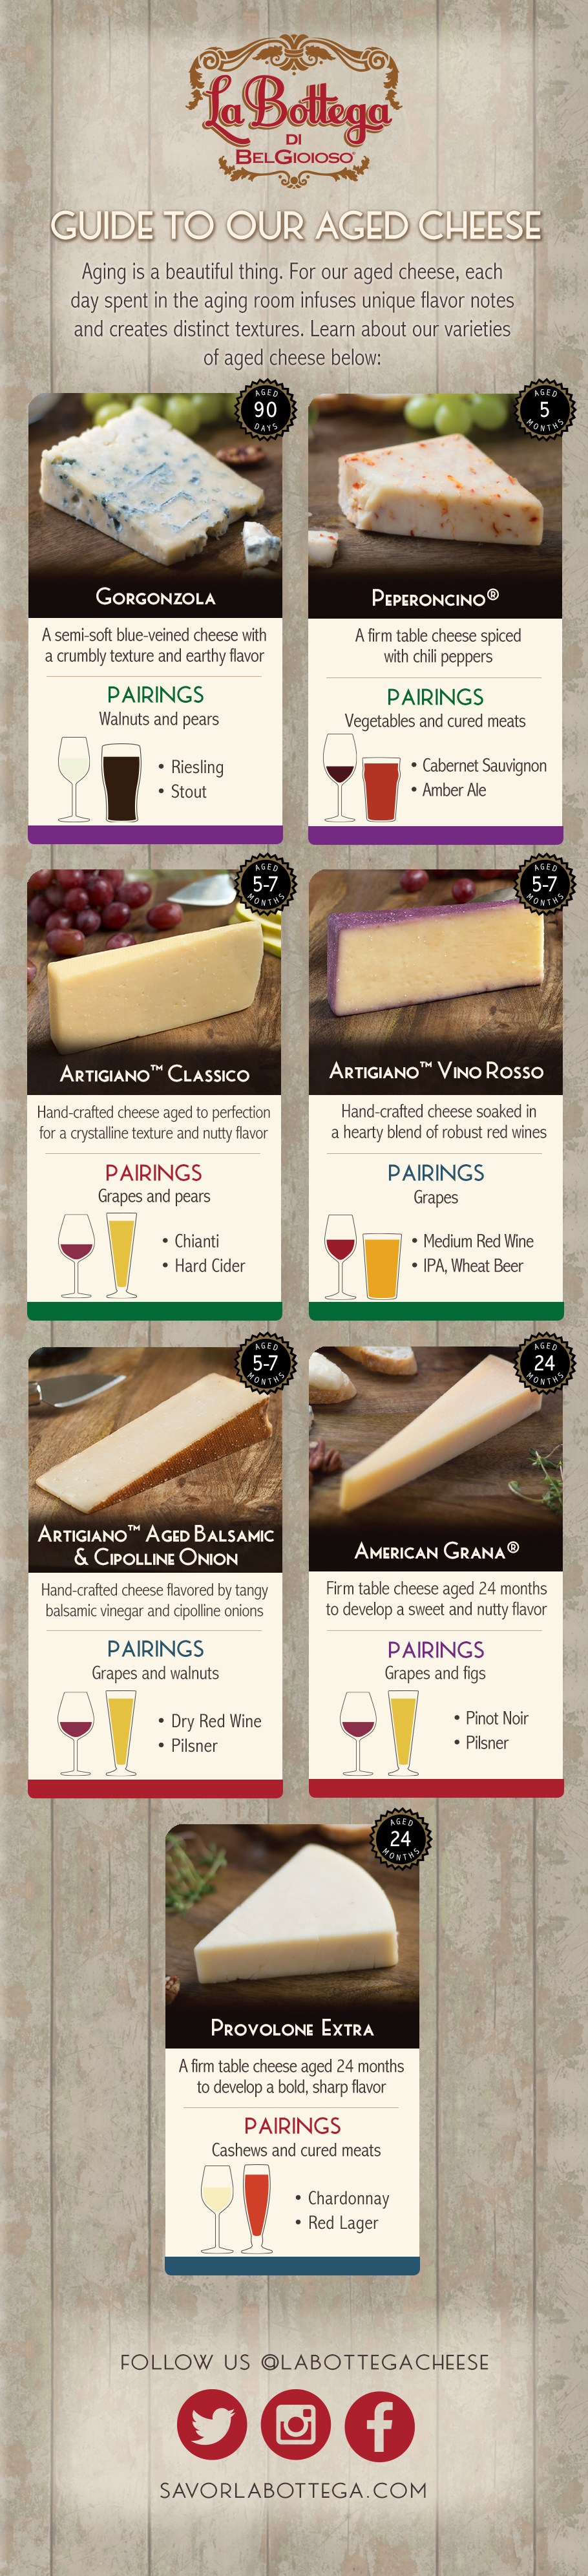 aged-cheese-infographic.jpg